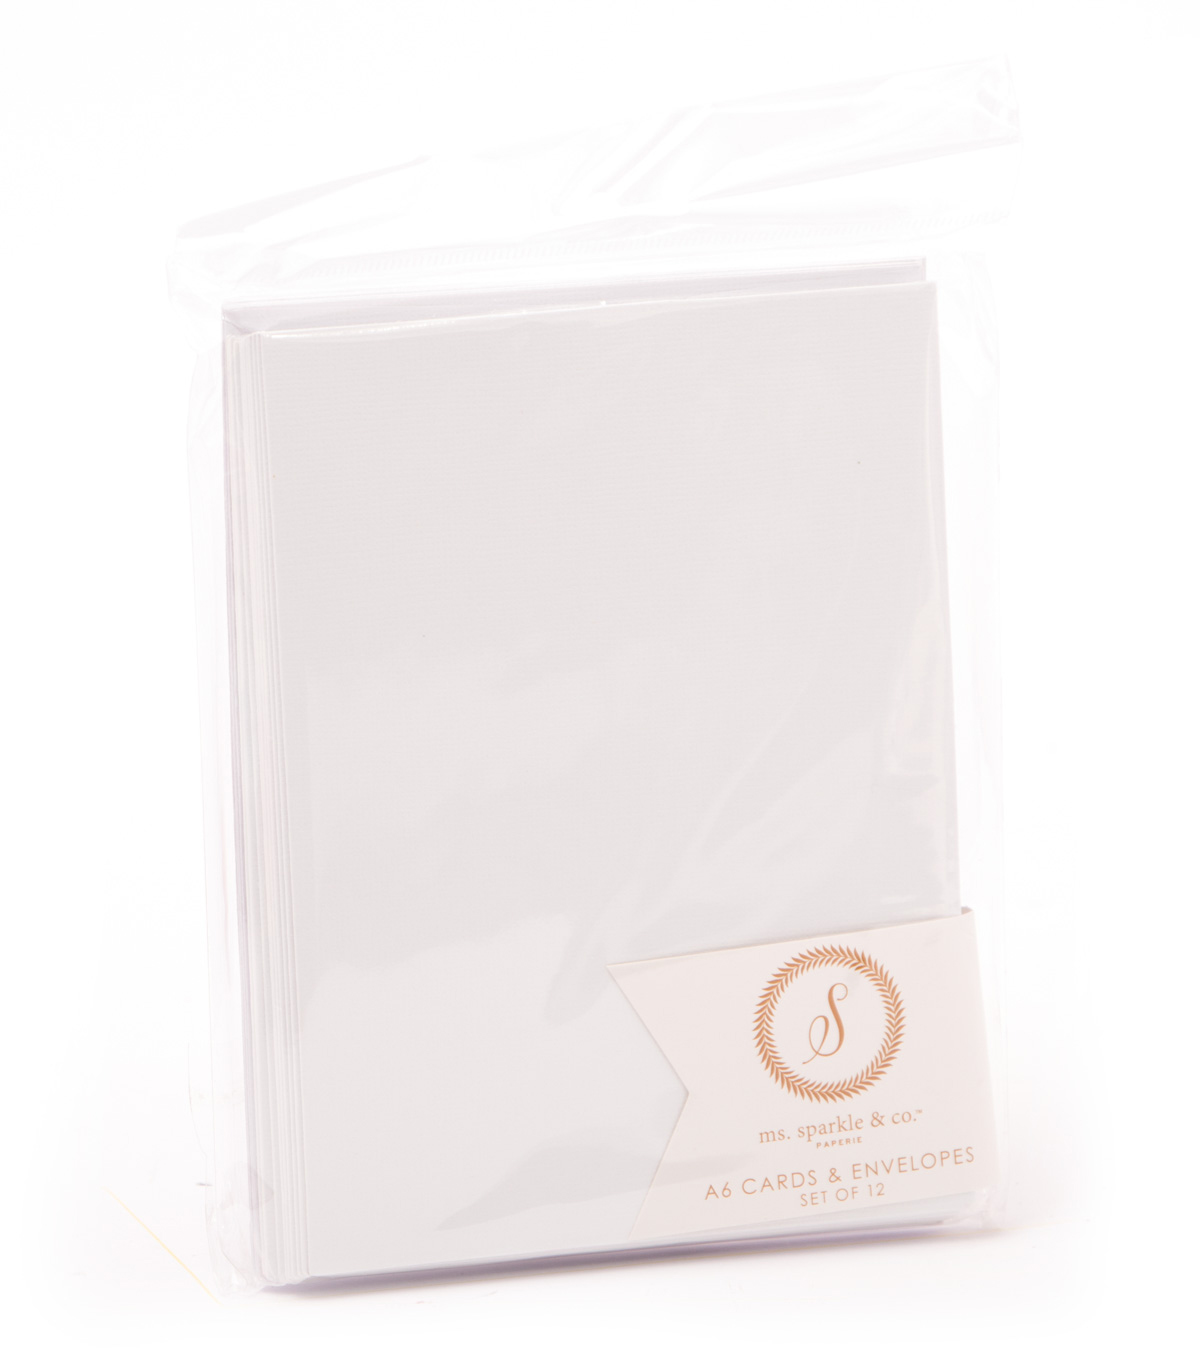 Ms. Sparkle & Co. A6 Cards & Envelopes-White